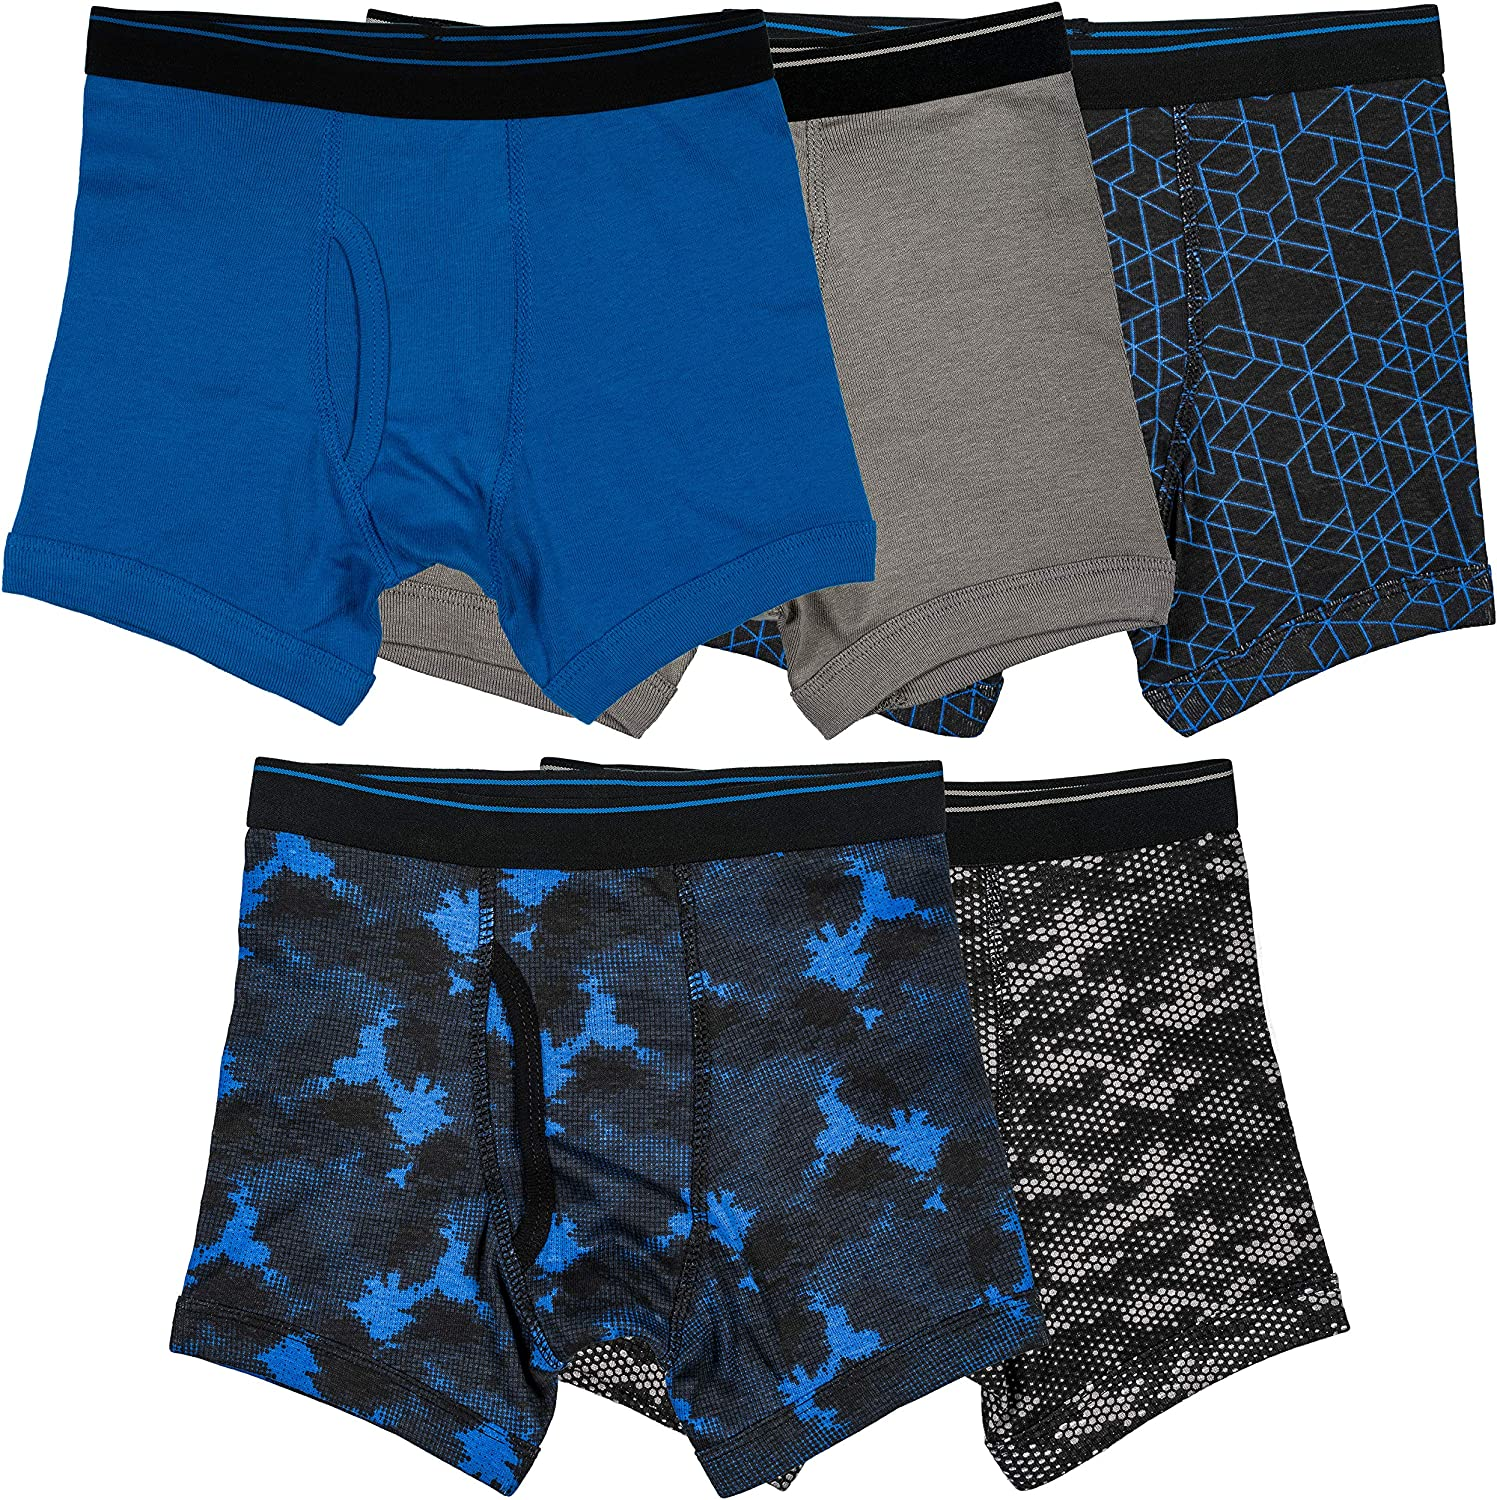 Trimfit Boys 100/% Cotton Tagless Boxer Briefs Underwear 5-Pack